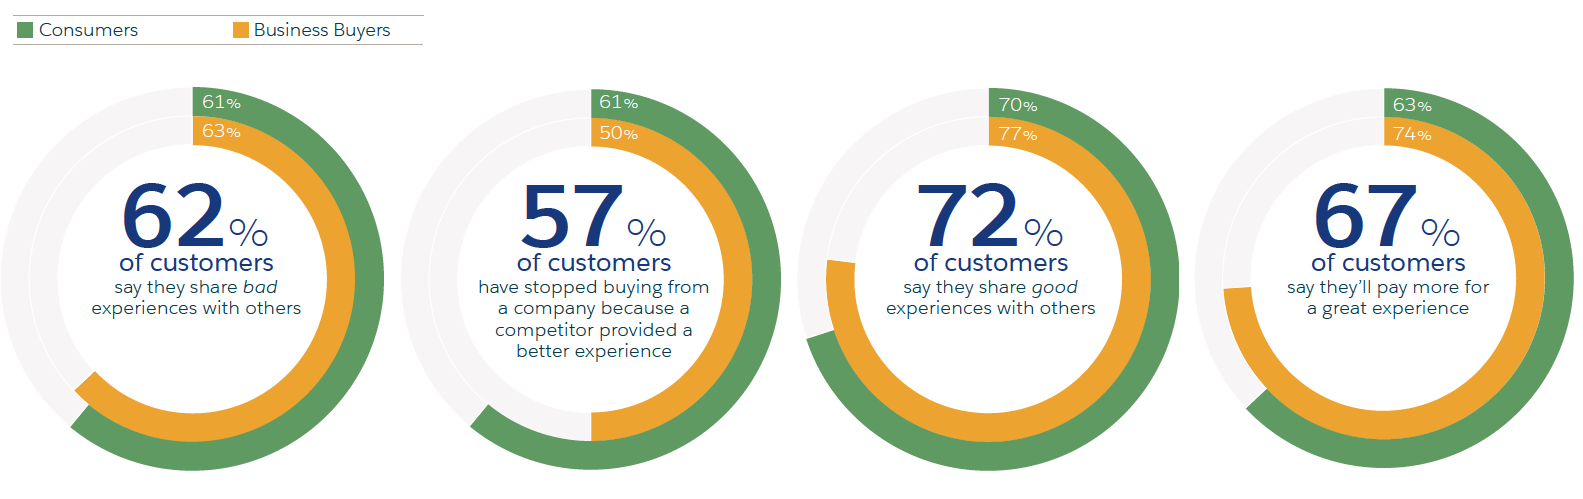 Experience is now a leading factor in consumer motivation, and many share that experience - whether good or bad.